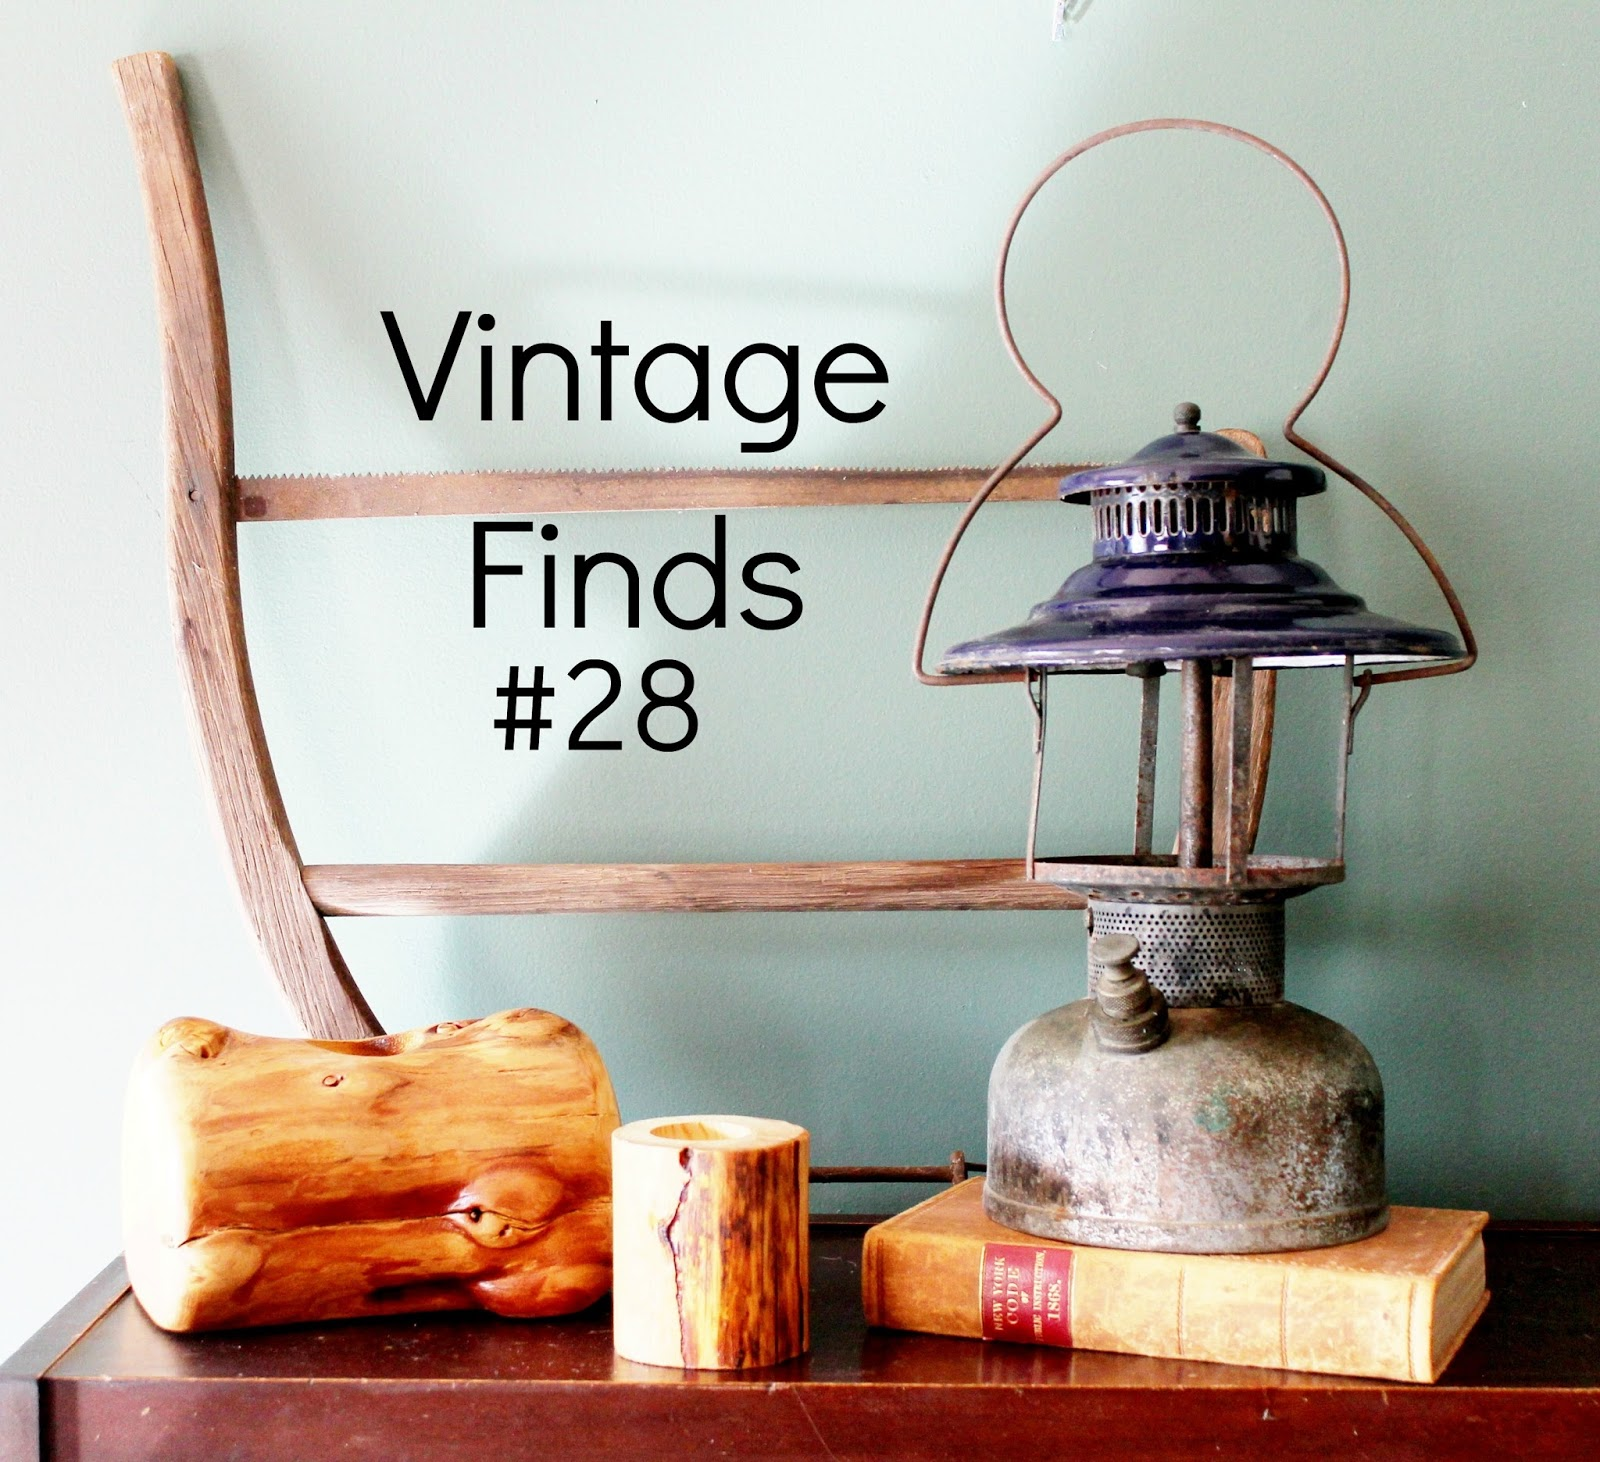 This Week's Vintage Finds #28